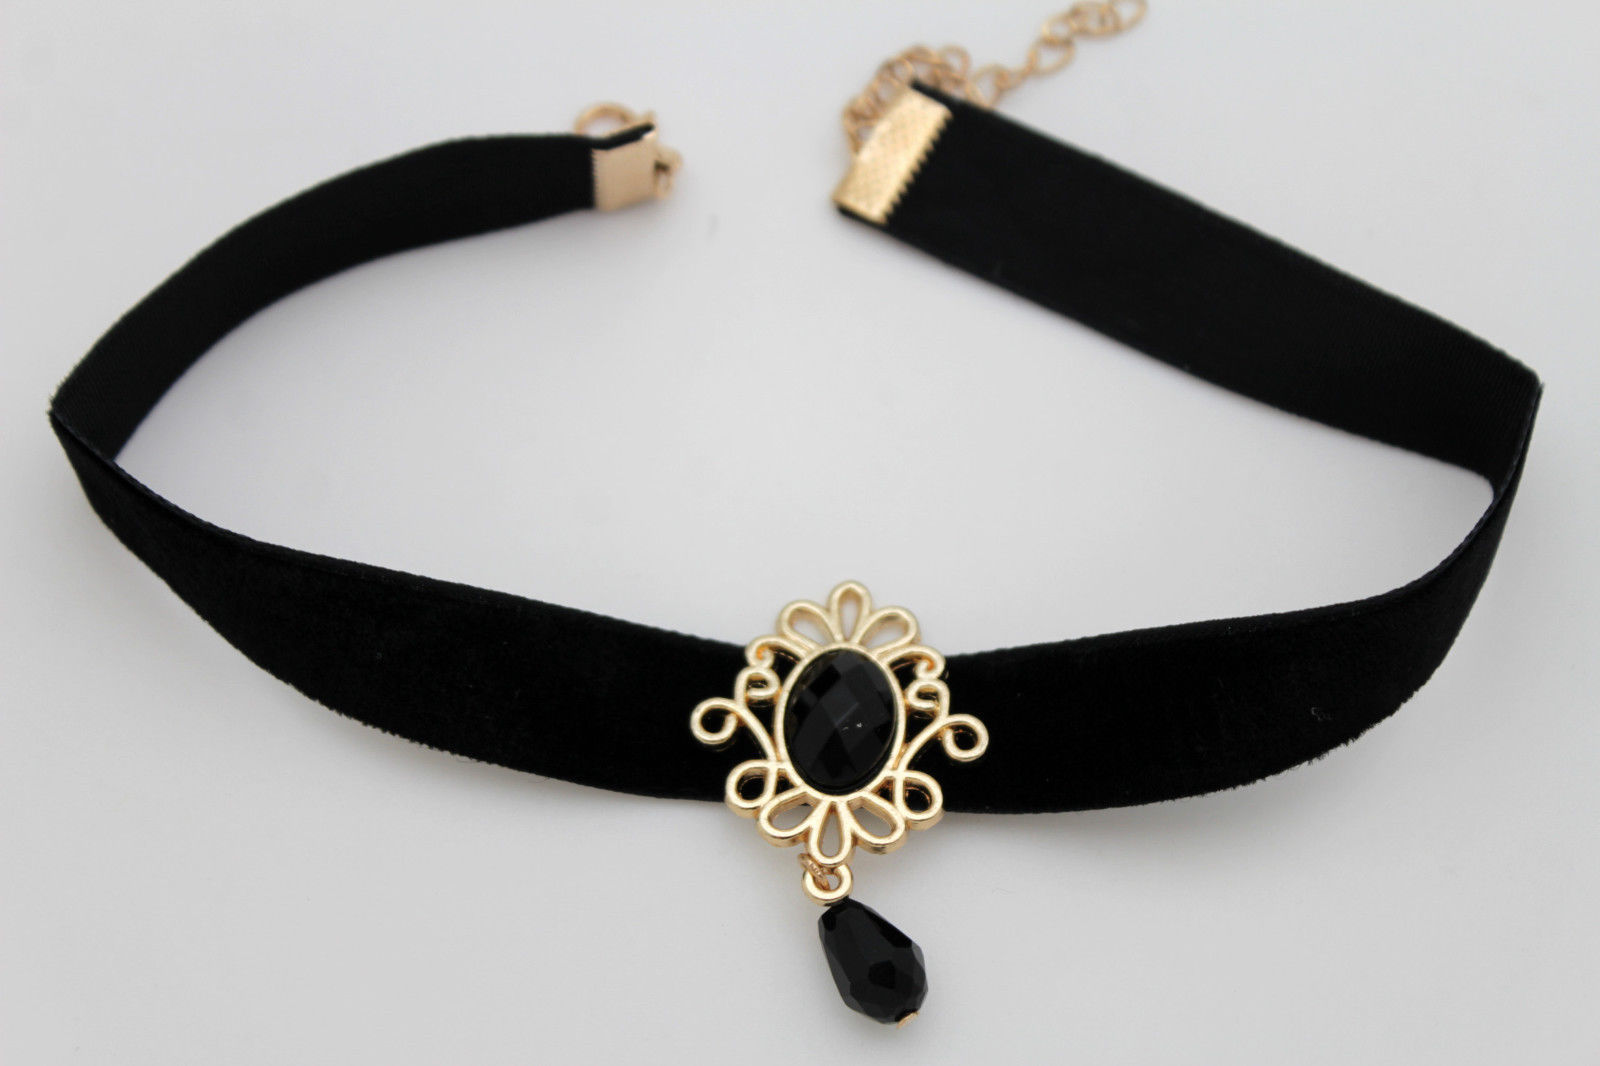 Women Gold Metal Vintage Style Charm Fashion Jewelry Choker Necklace Black Strap Necklaces